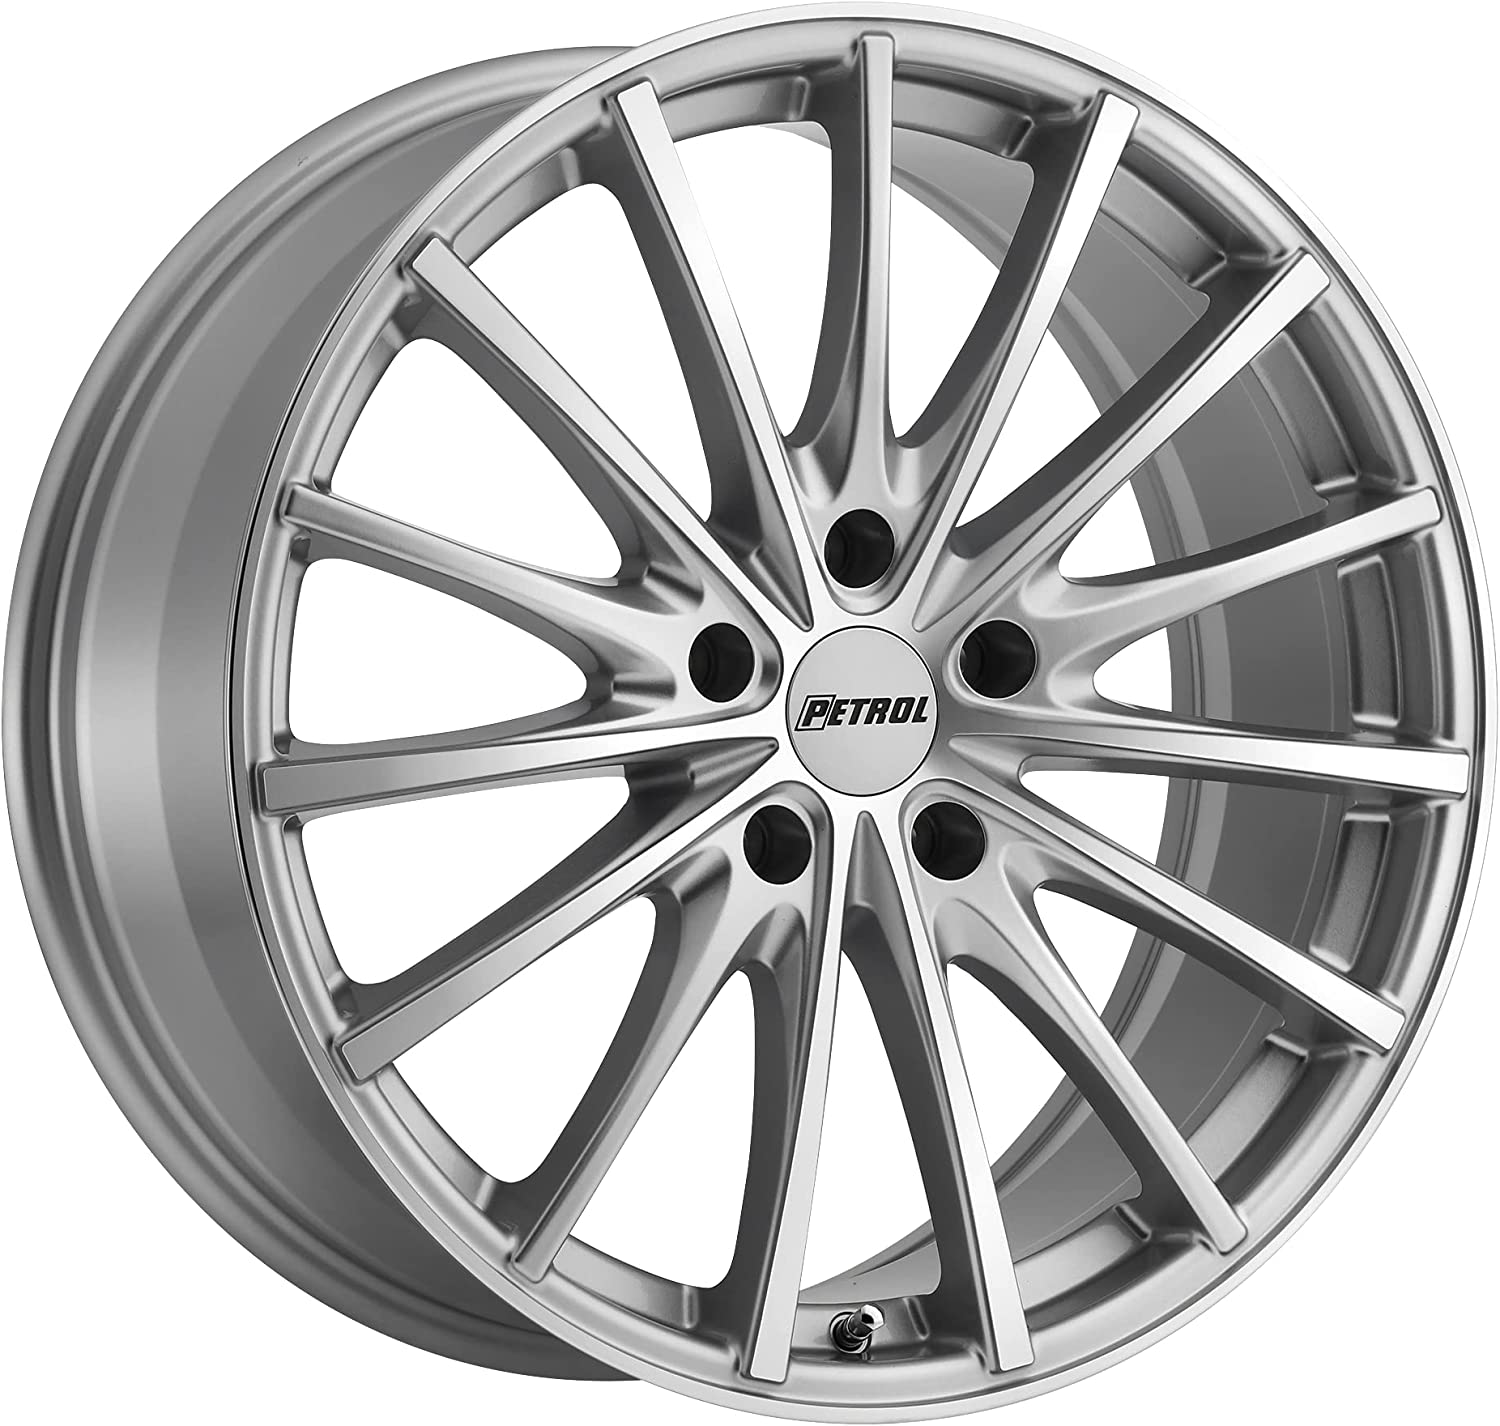 Deal on Wheels PEP3A Long-awaited 19X8 Dedication 5X112 32MM MCH-FC Whee AFTERMARKET SLV